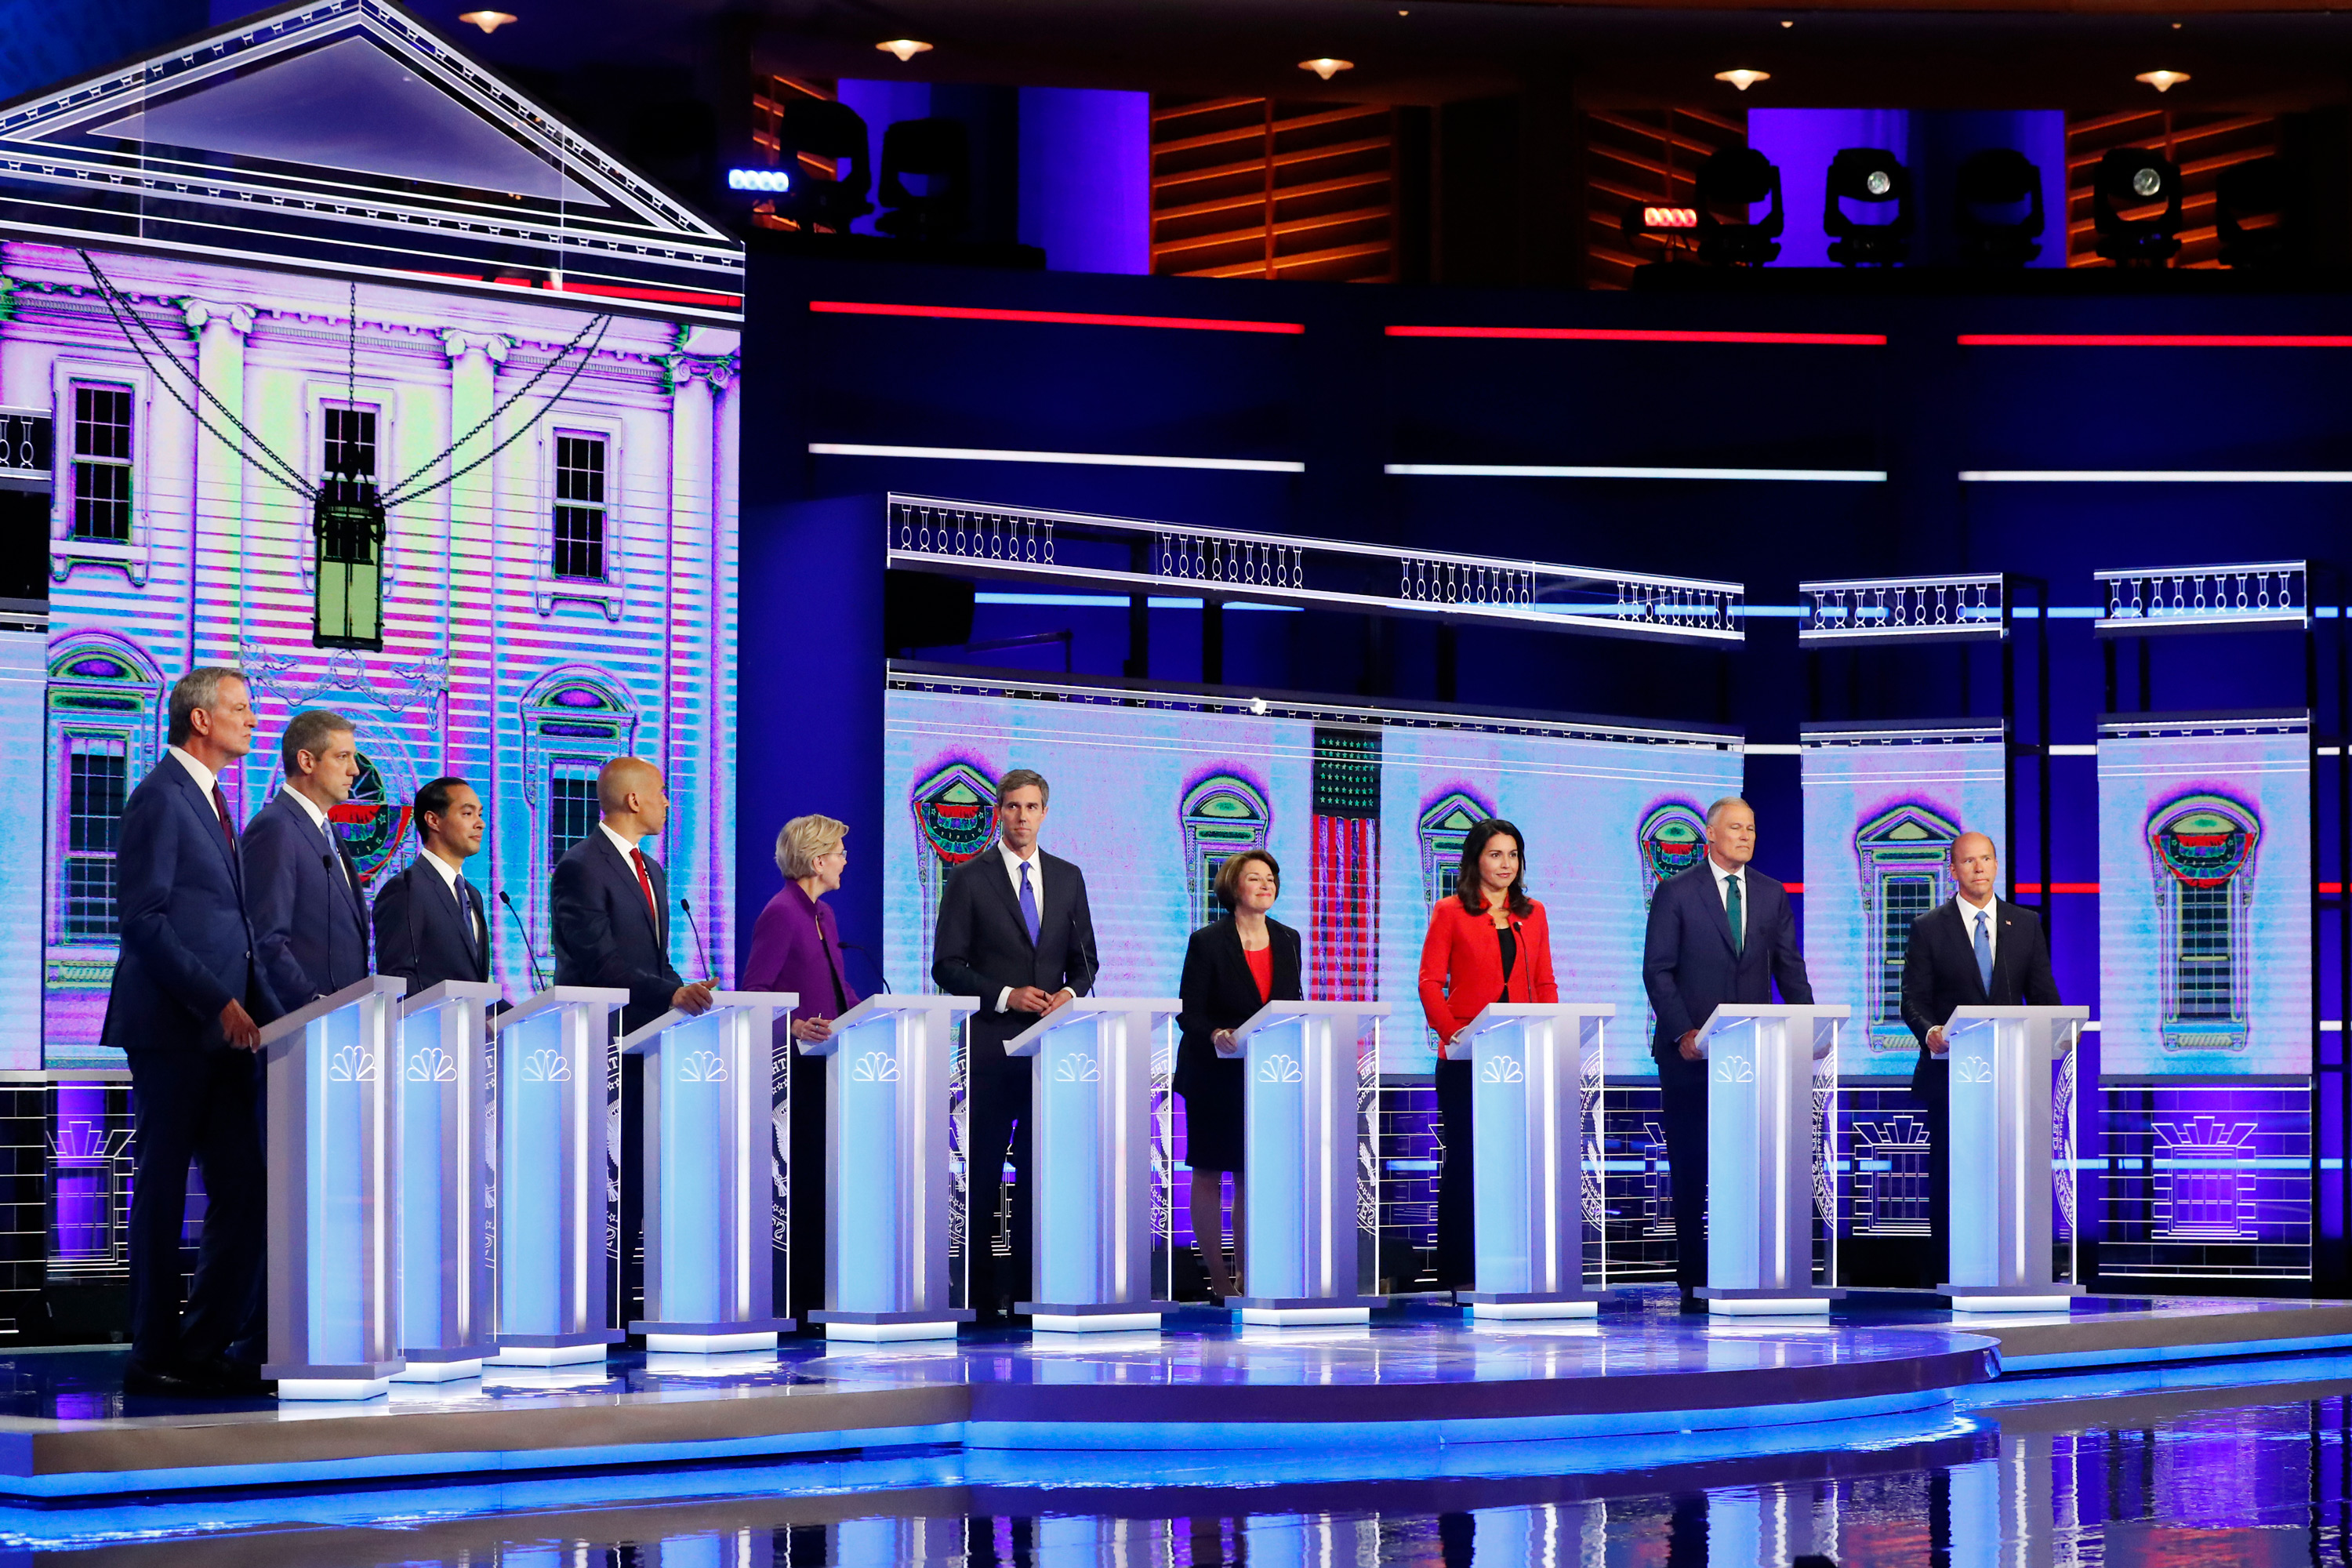 Seven climate questions we'd ask the Democratic presidential candidates tonight